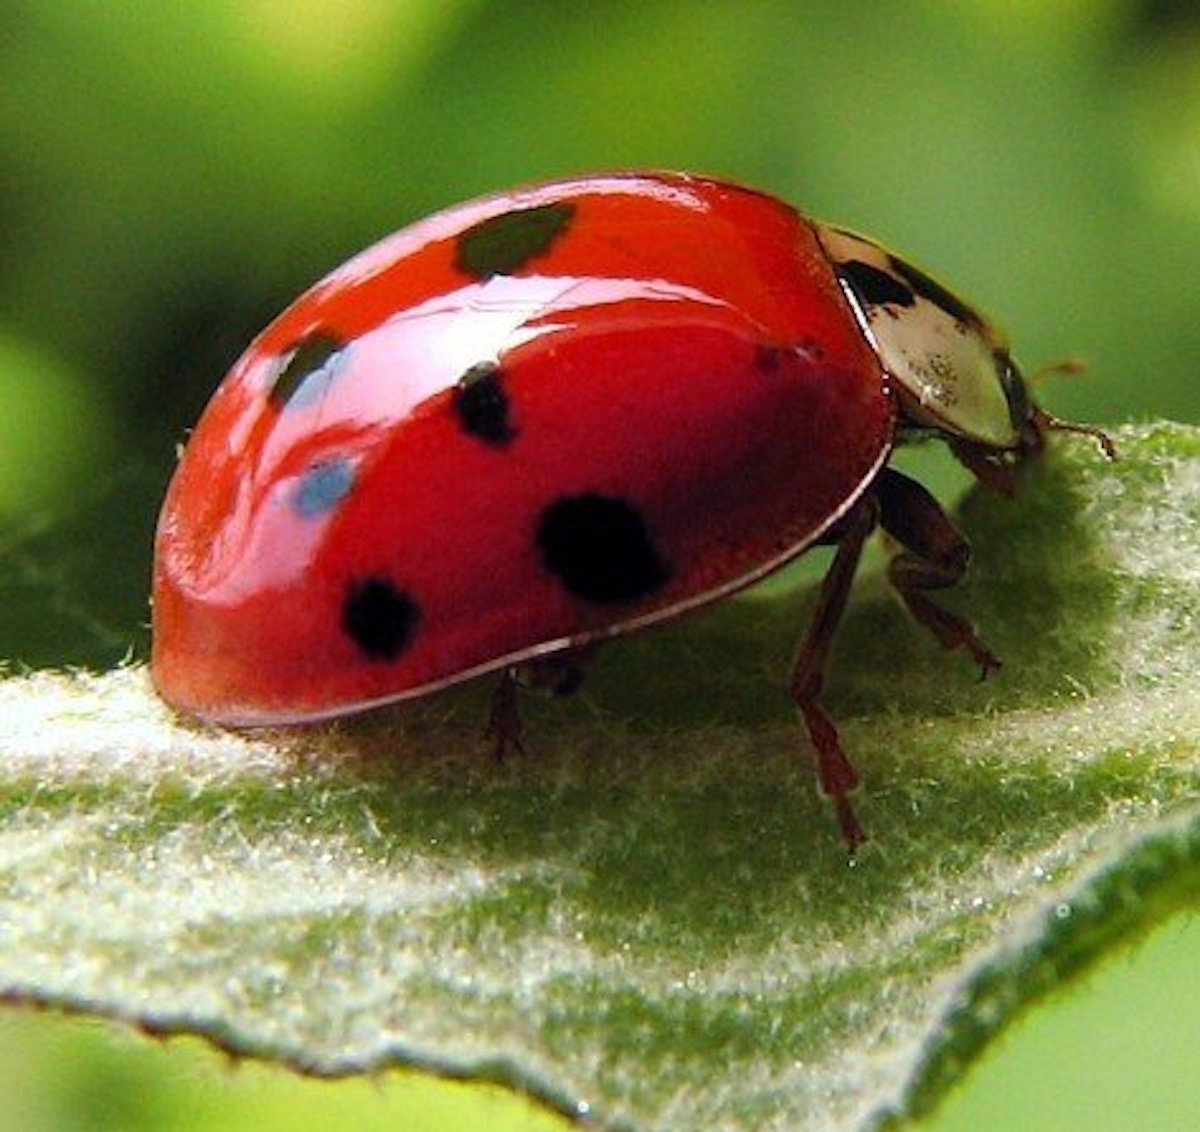 1,500 ladybugs warriors for your garden